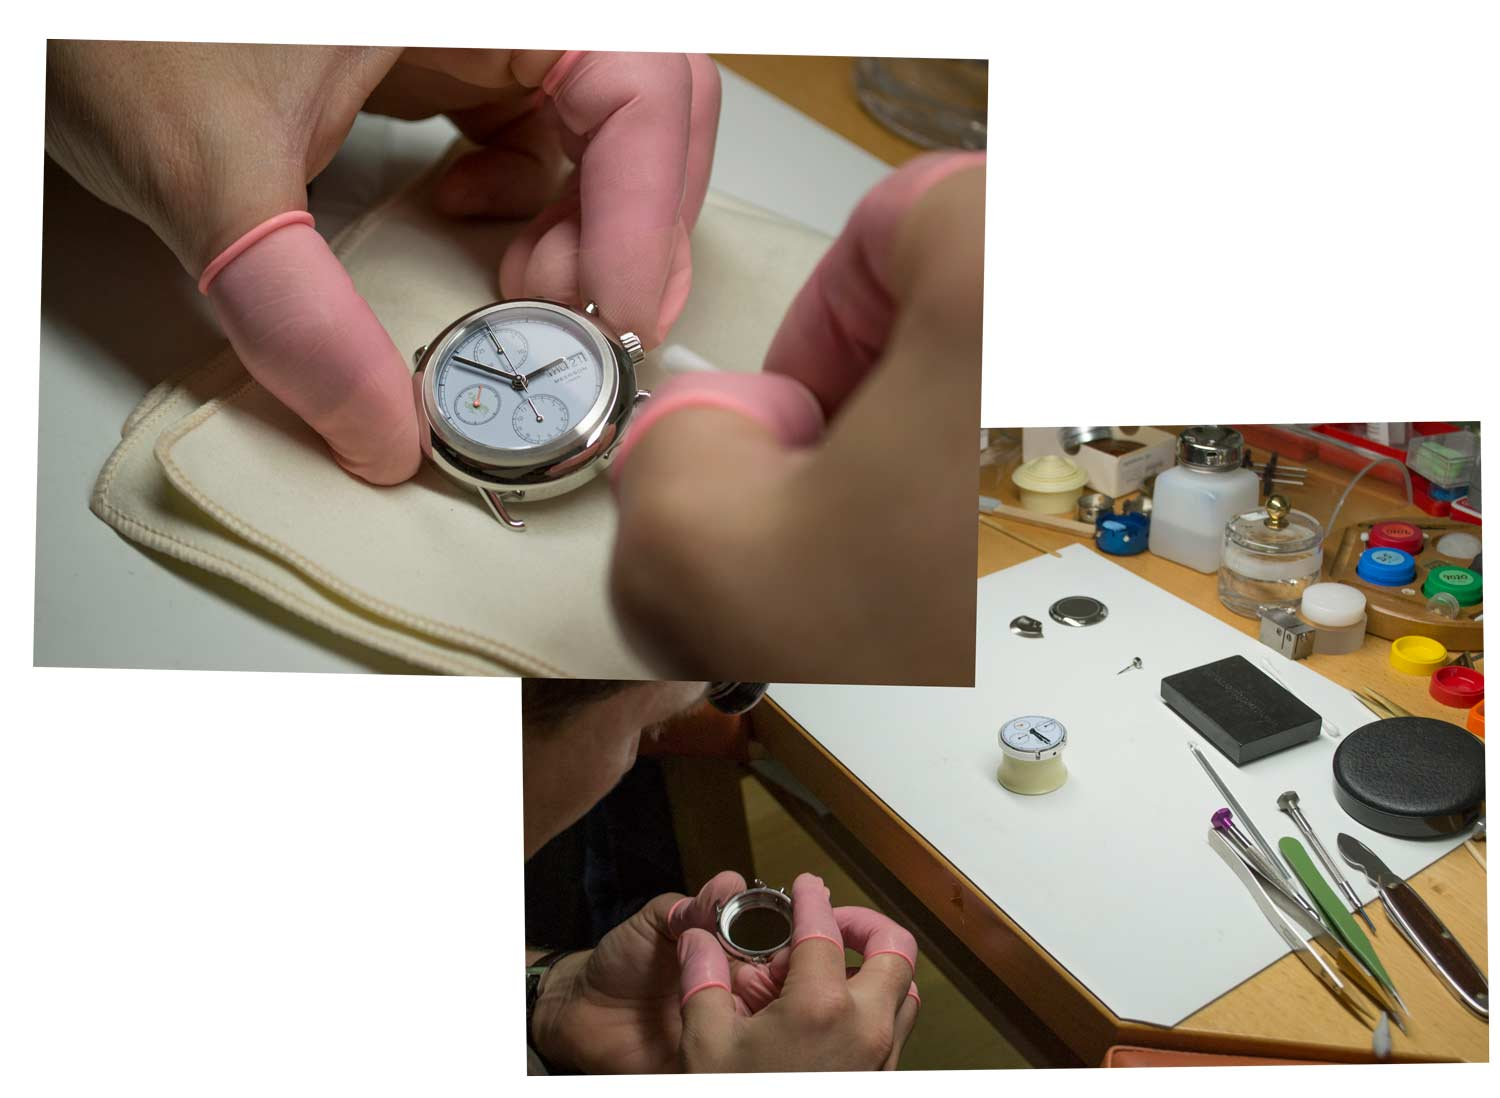 Alexandre Meerson Mutiny collection | British luxury watches | Reimagining luxury for today | The Process